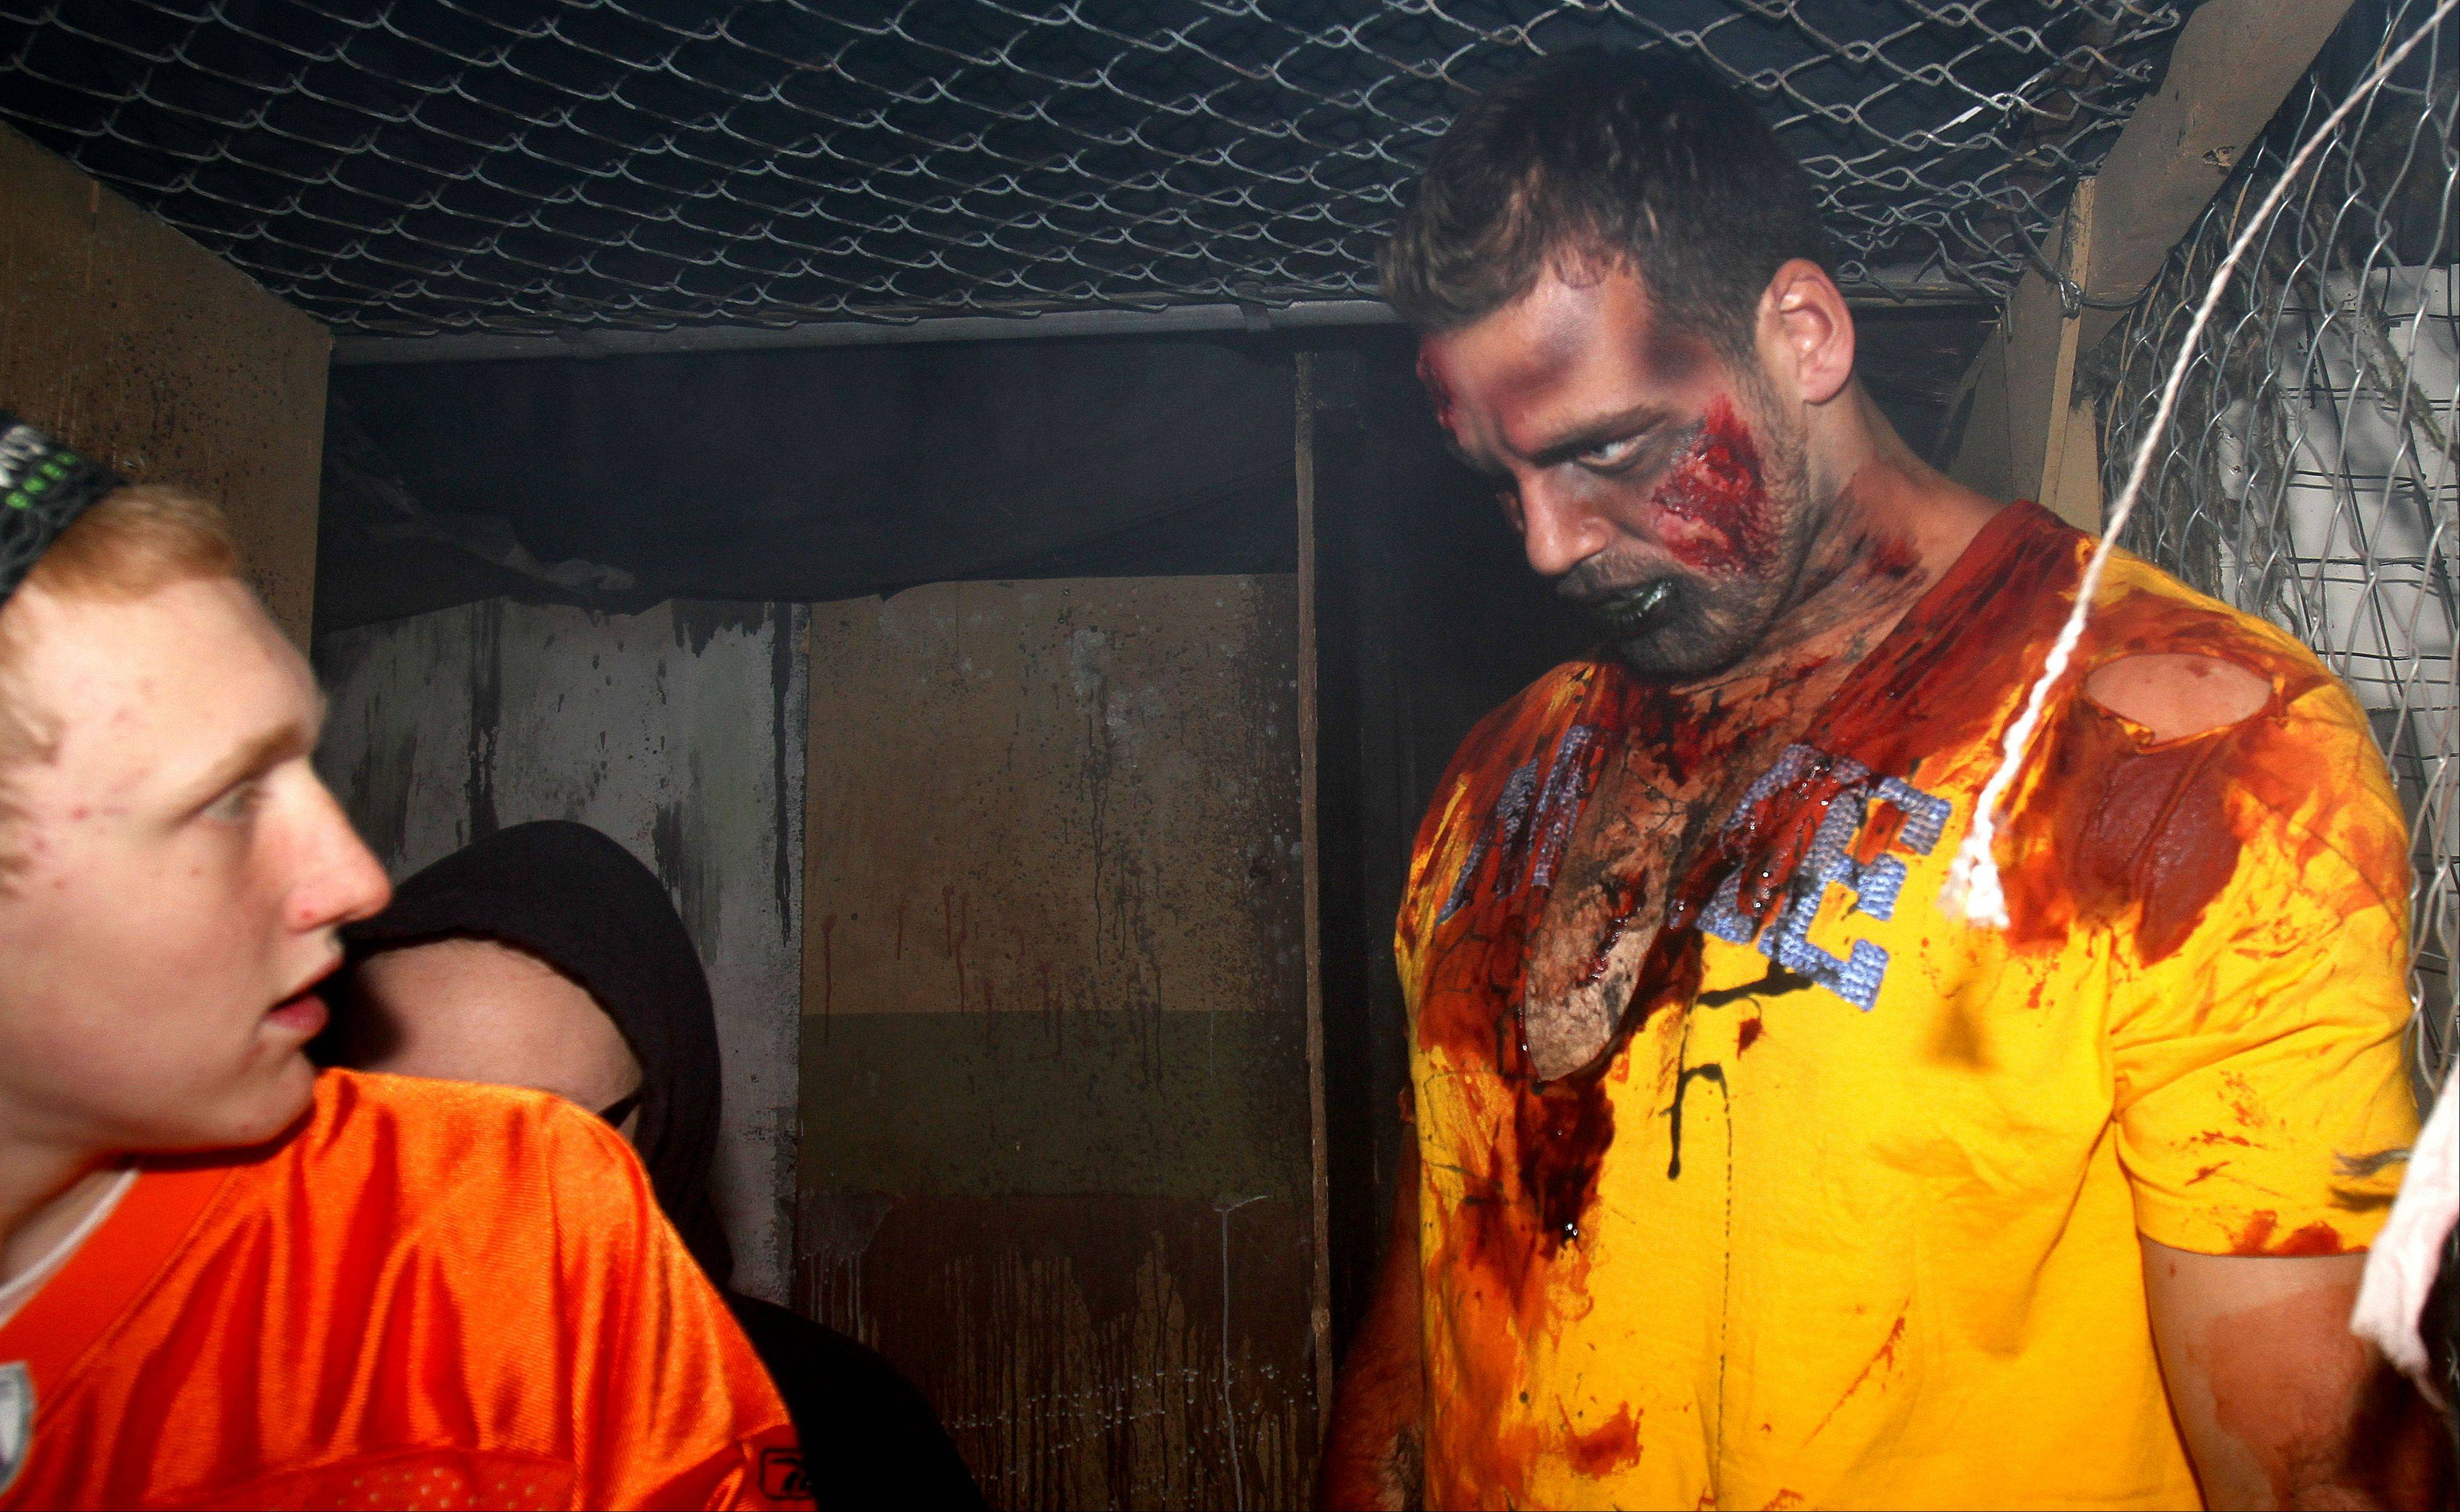 Bears offensive lineman Gabe Carimi scares visitors to the Realm of Terror haunted house at Kristof's Family Fun Center on Monday in Round Lake Beach.